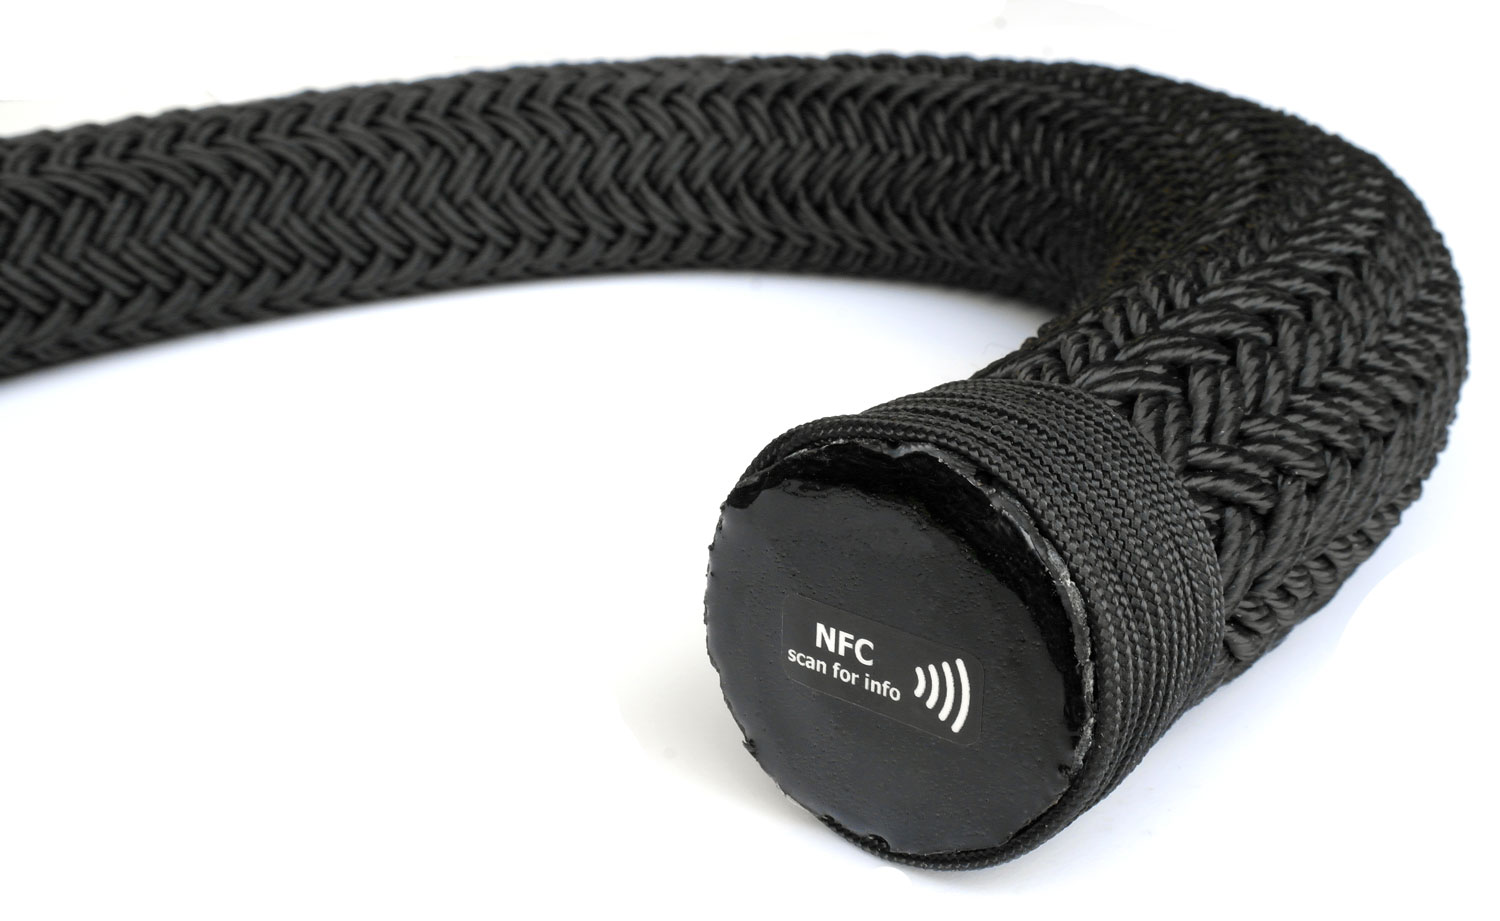 Mooring rope NFC identification